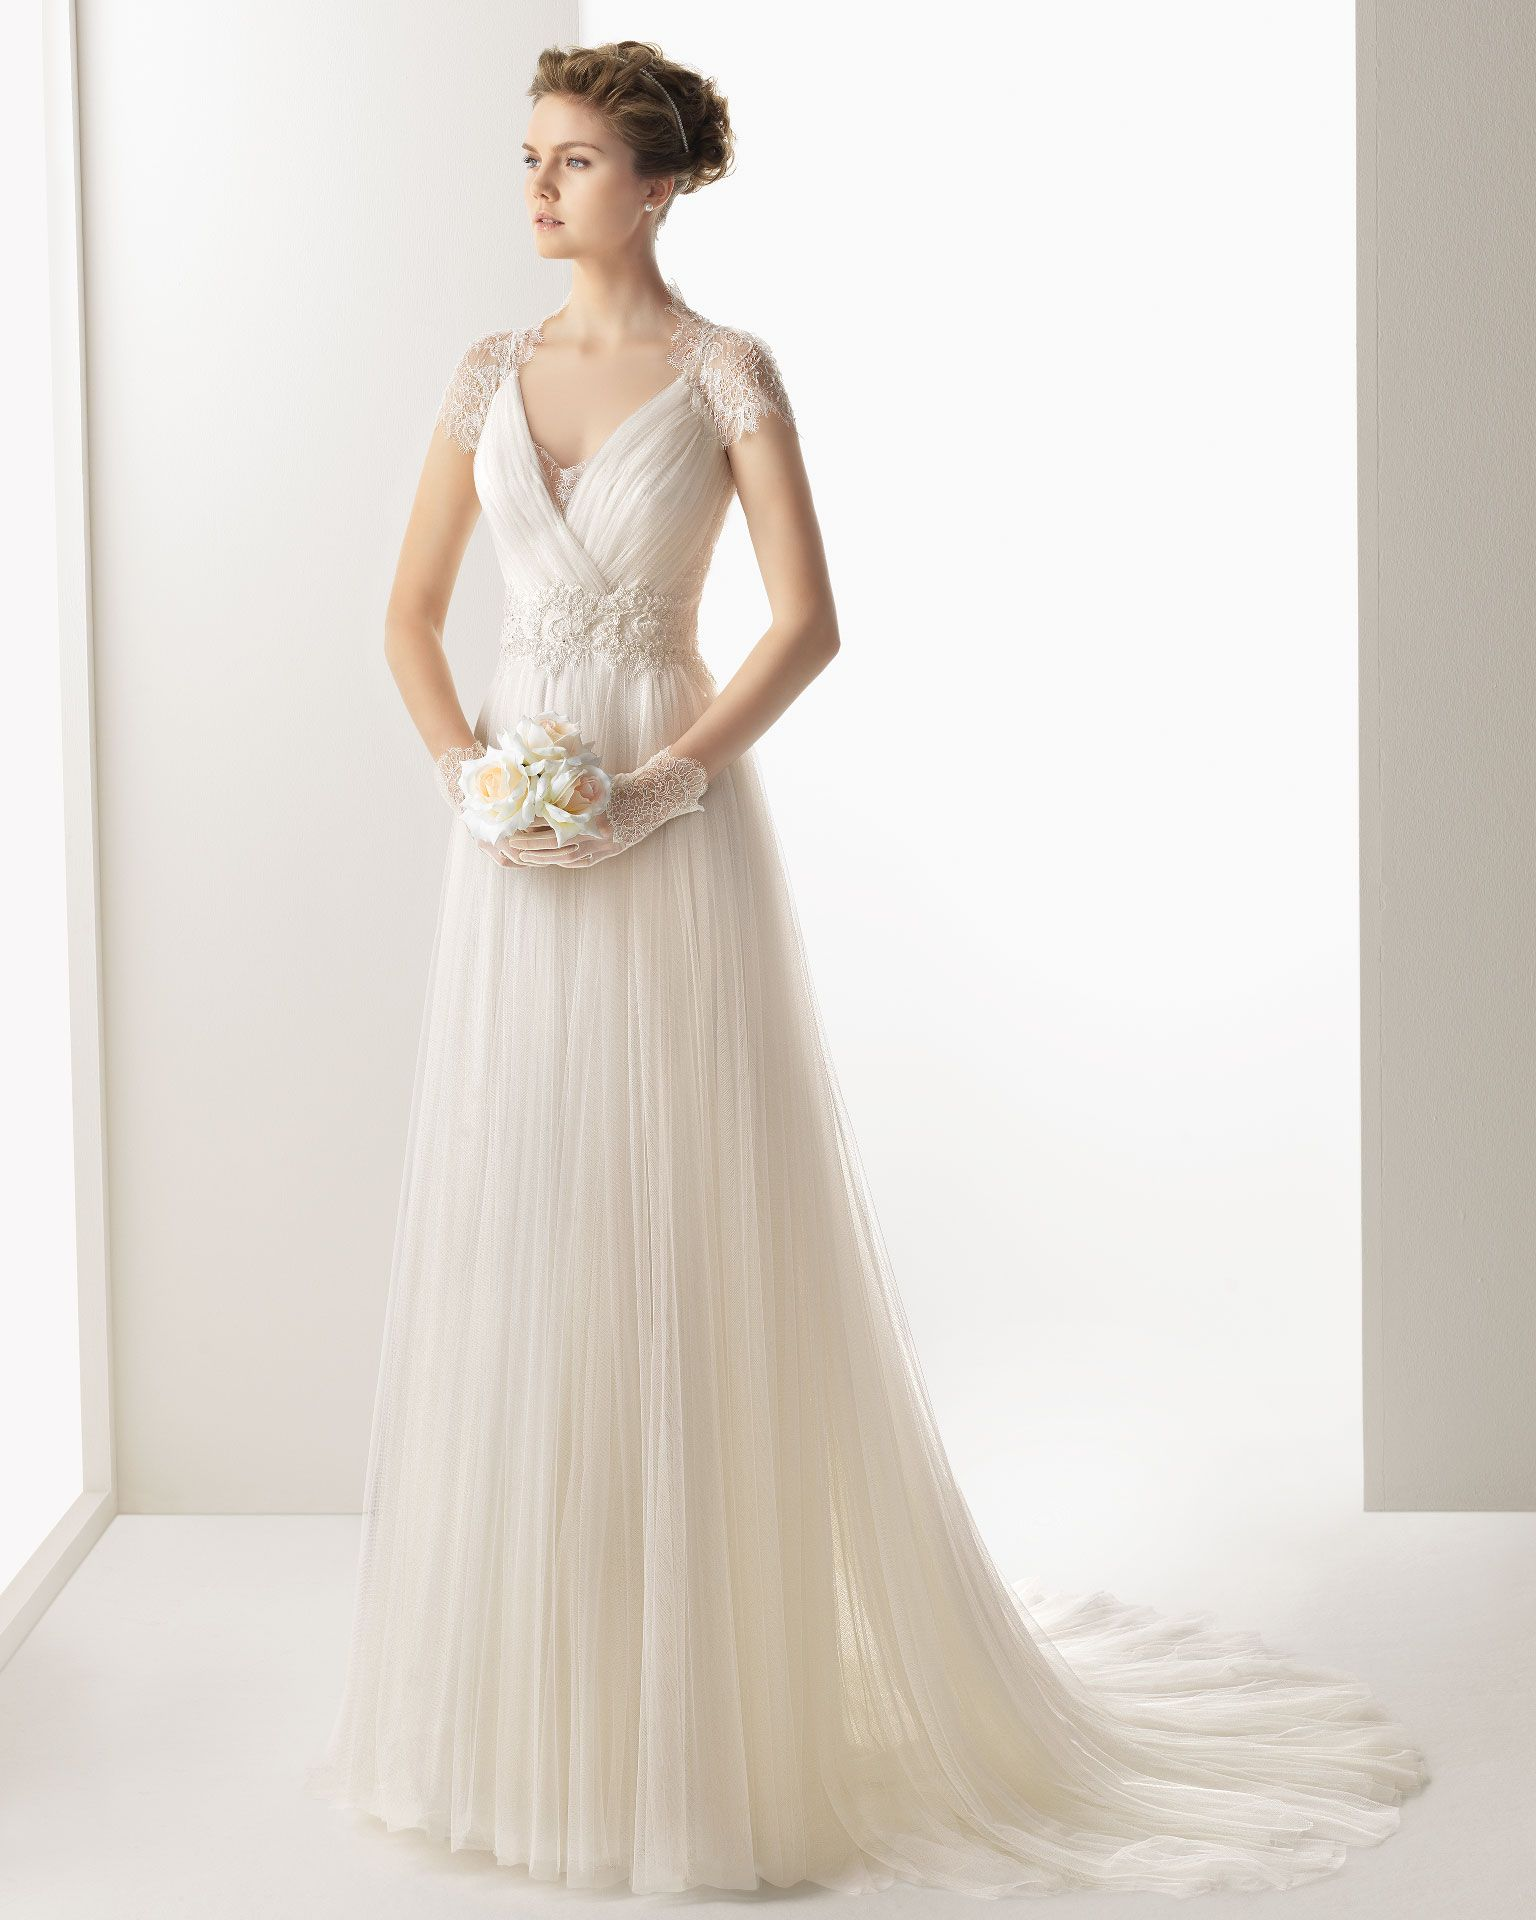 UNAX Beaded silk tulle and lace dress in a natural colourT